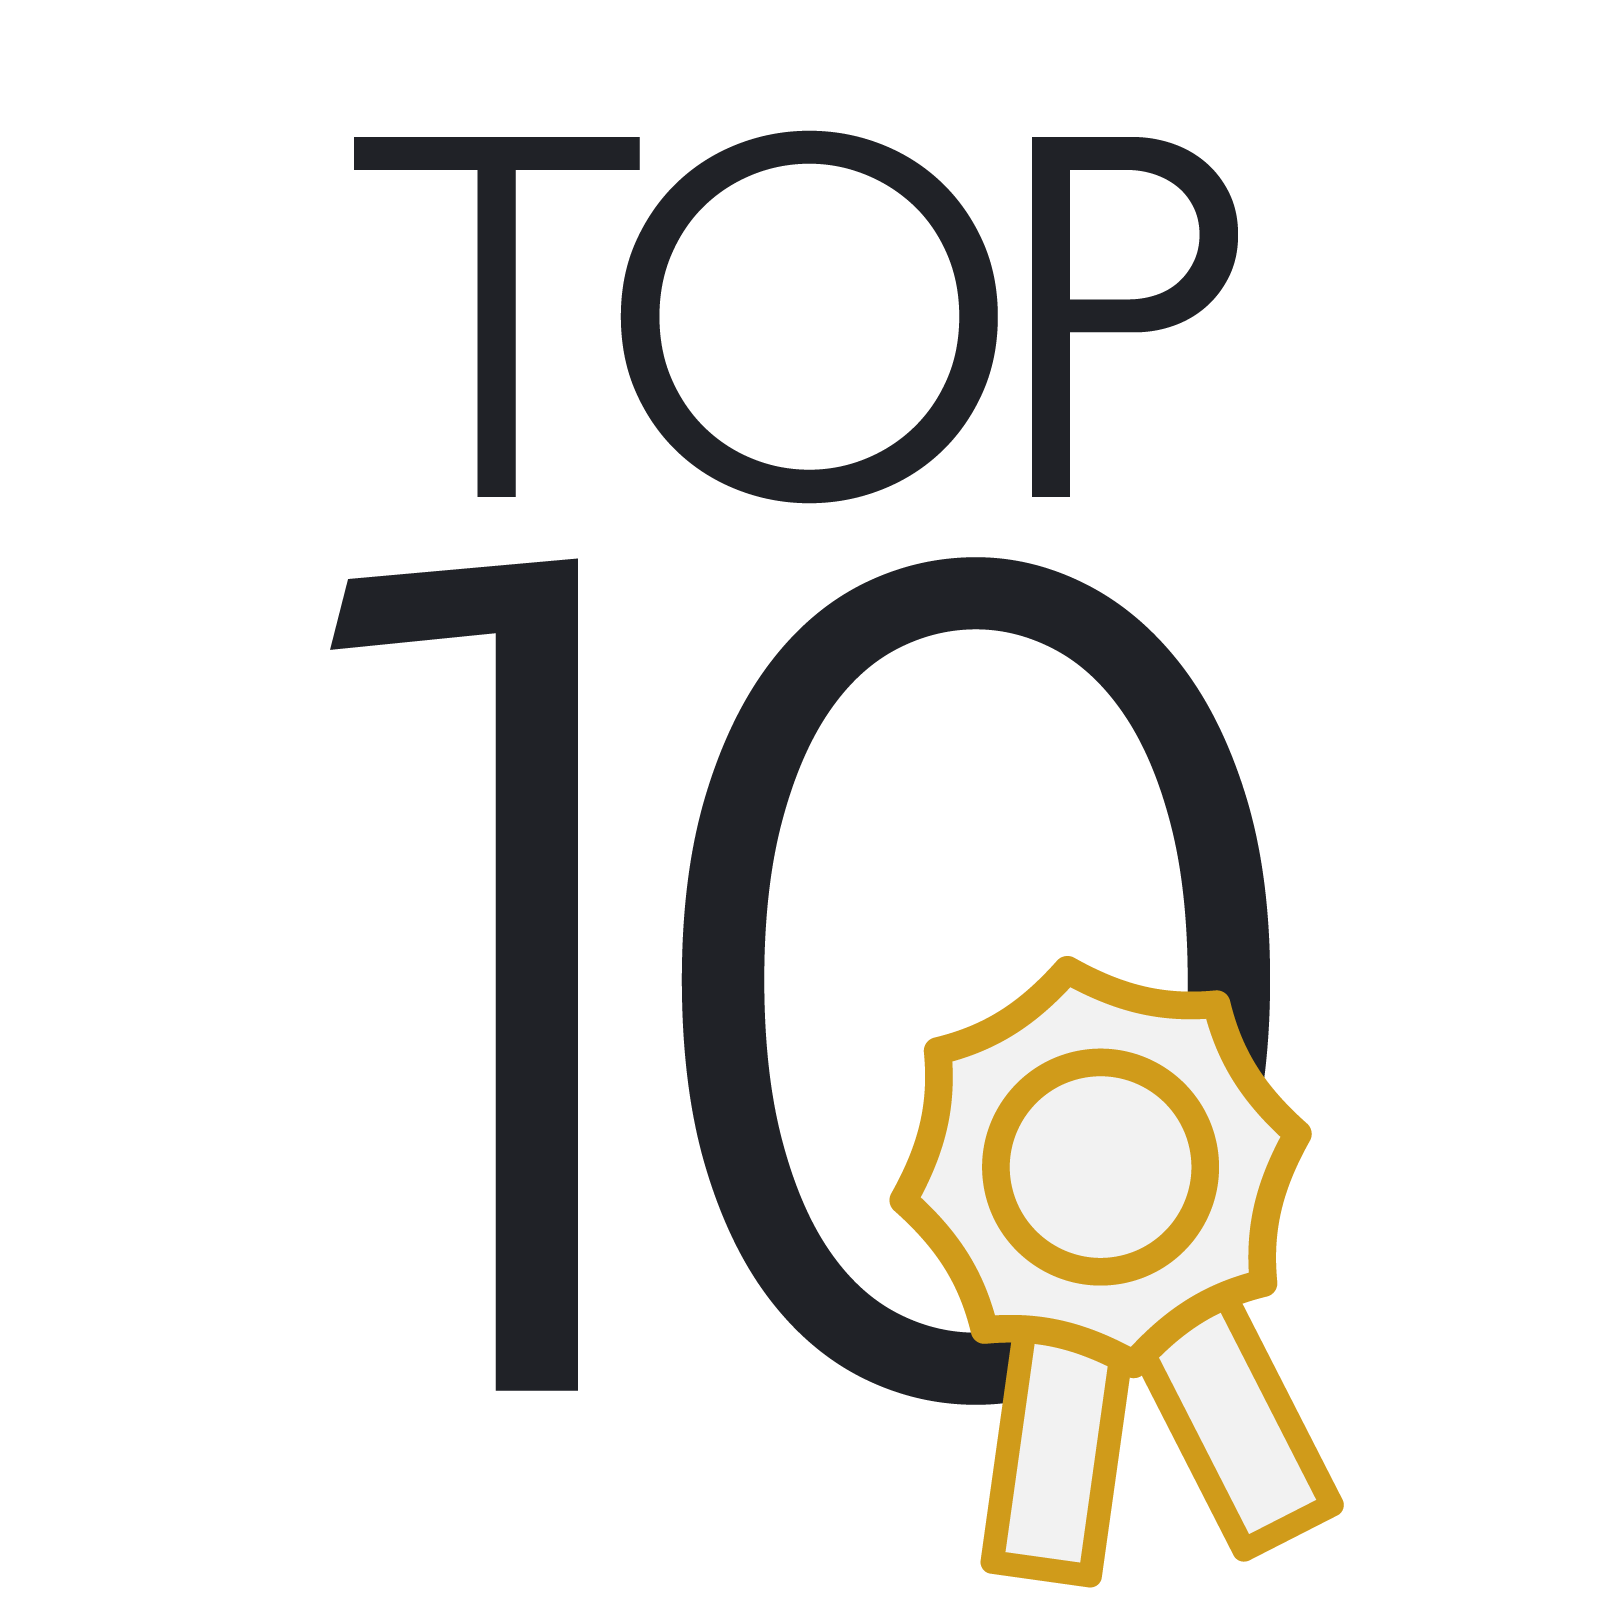 Top 10 in the UK image